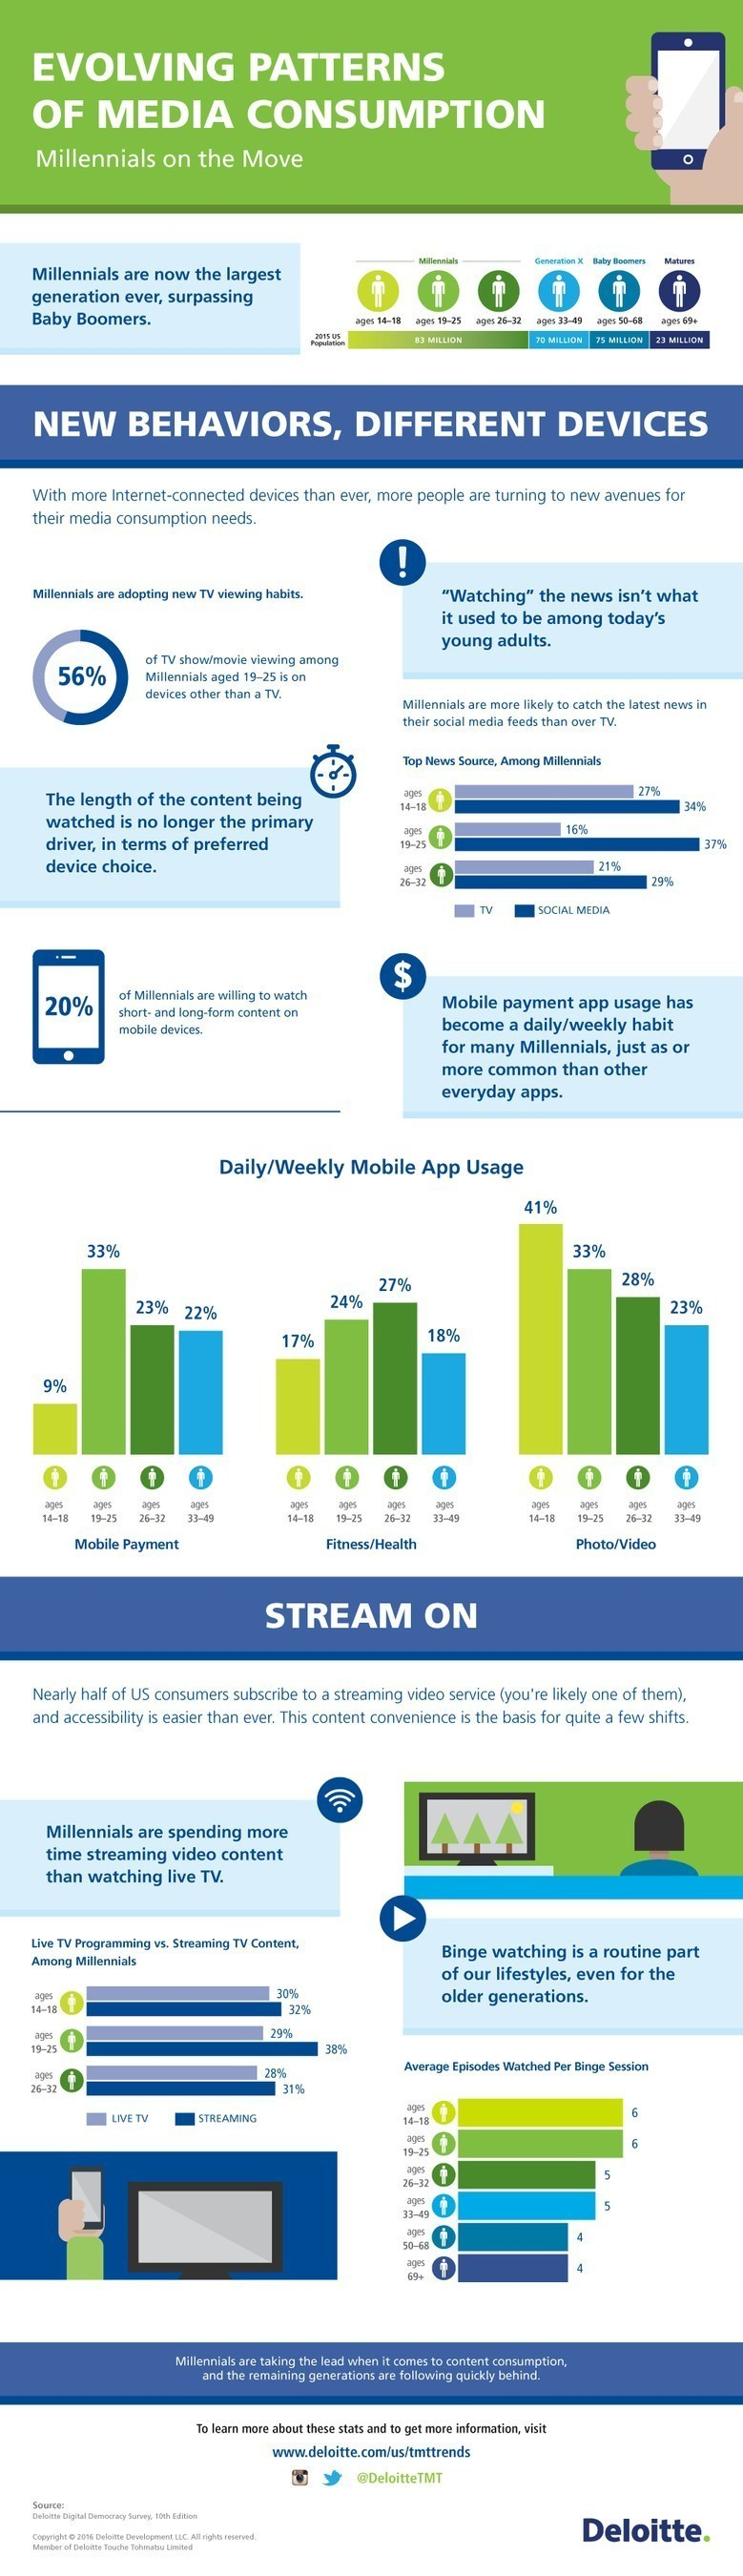 EVOLVING PATTERNS OF MEDIA CONSUMPTION Infographic